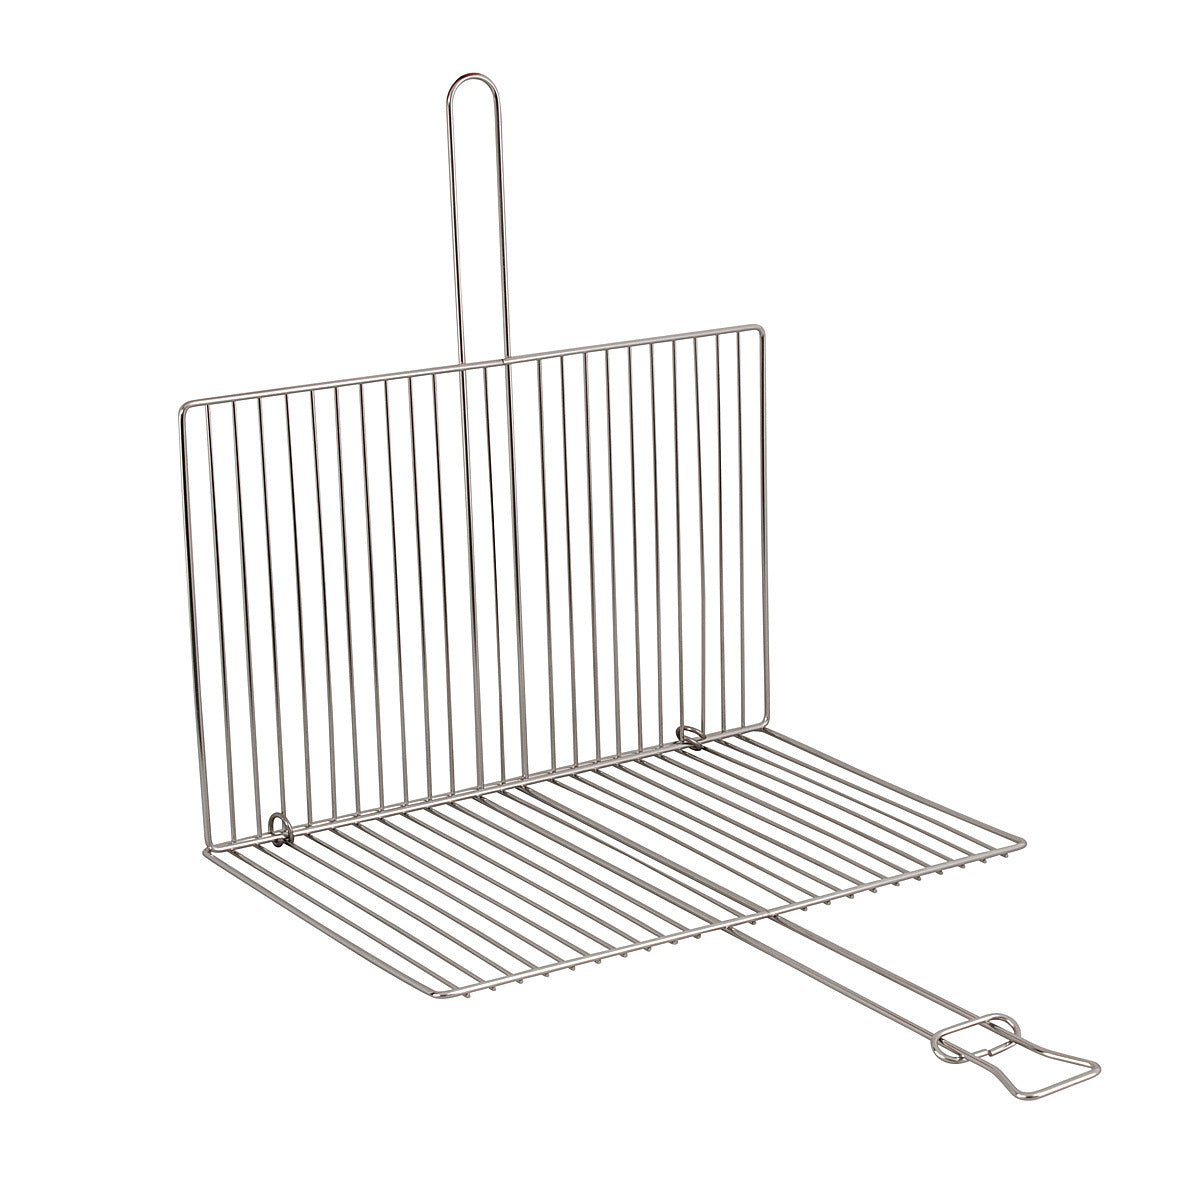 BBQ Grill - Double - Medium 51cm x 33cm